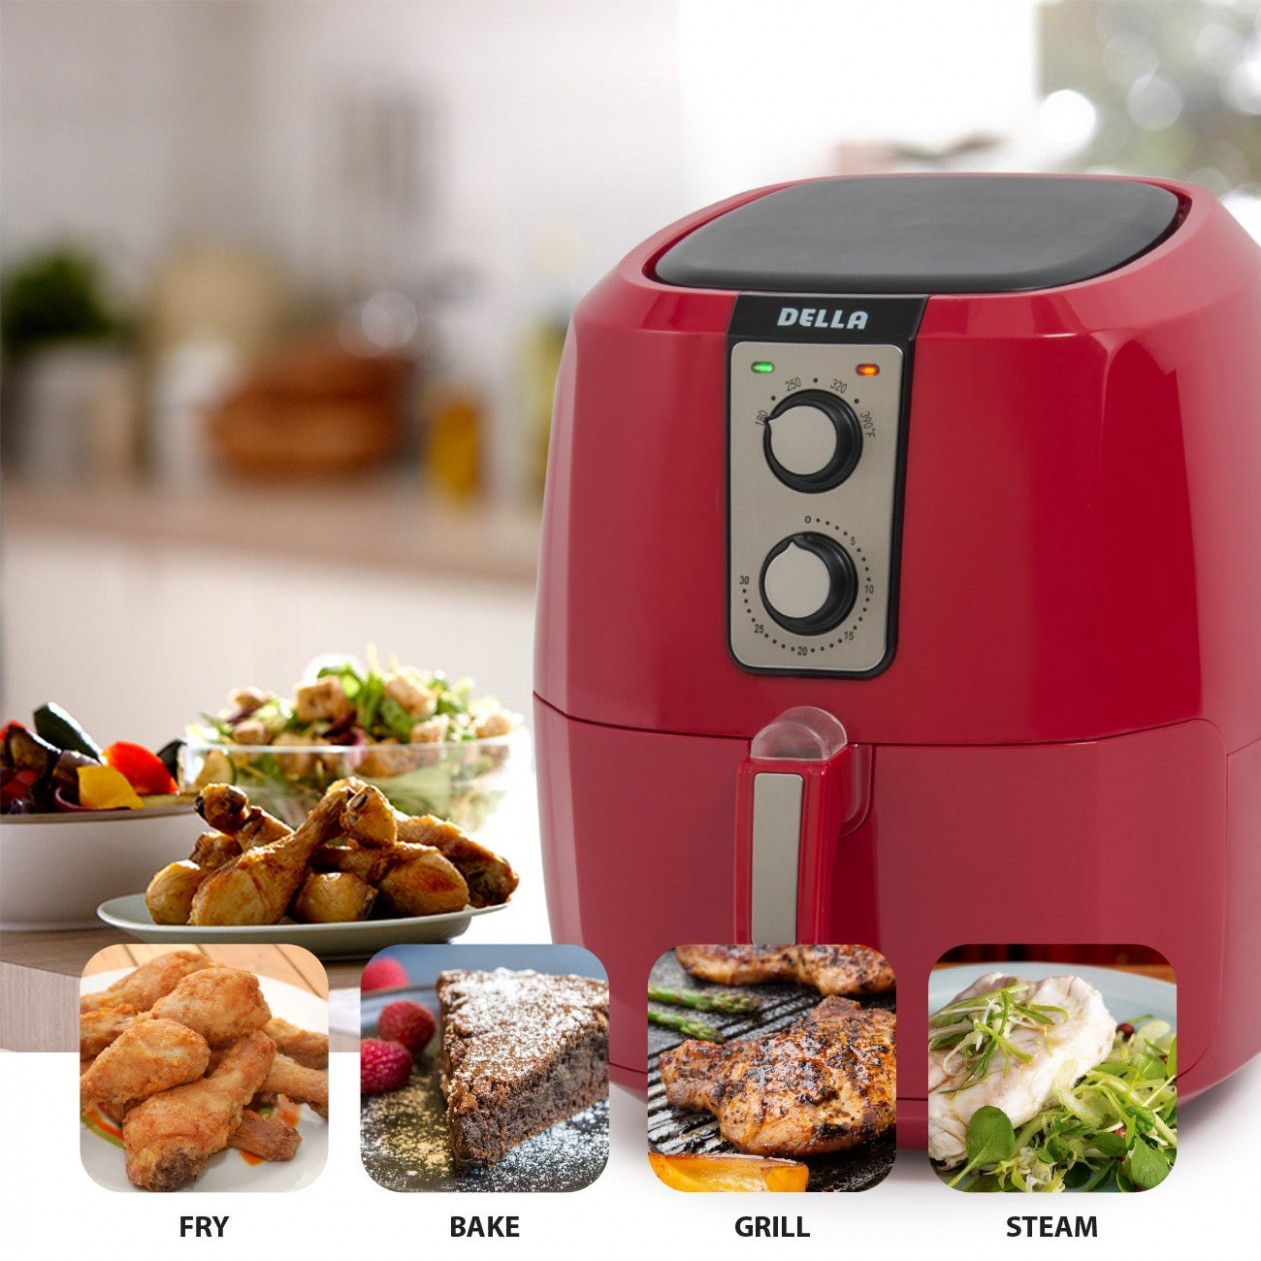 Della Low Fat Healthy Multi Cooker Rapid Air Circulation System XL Electric  Air Fryer, 10